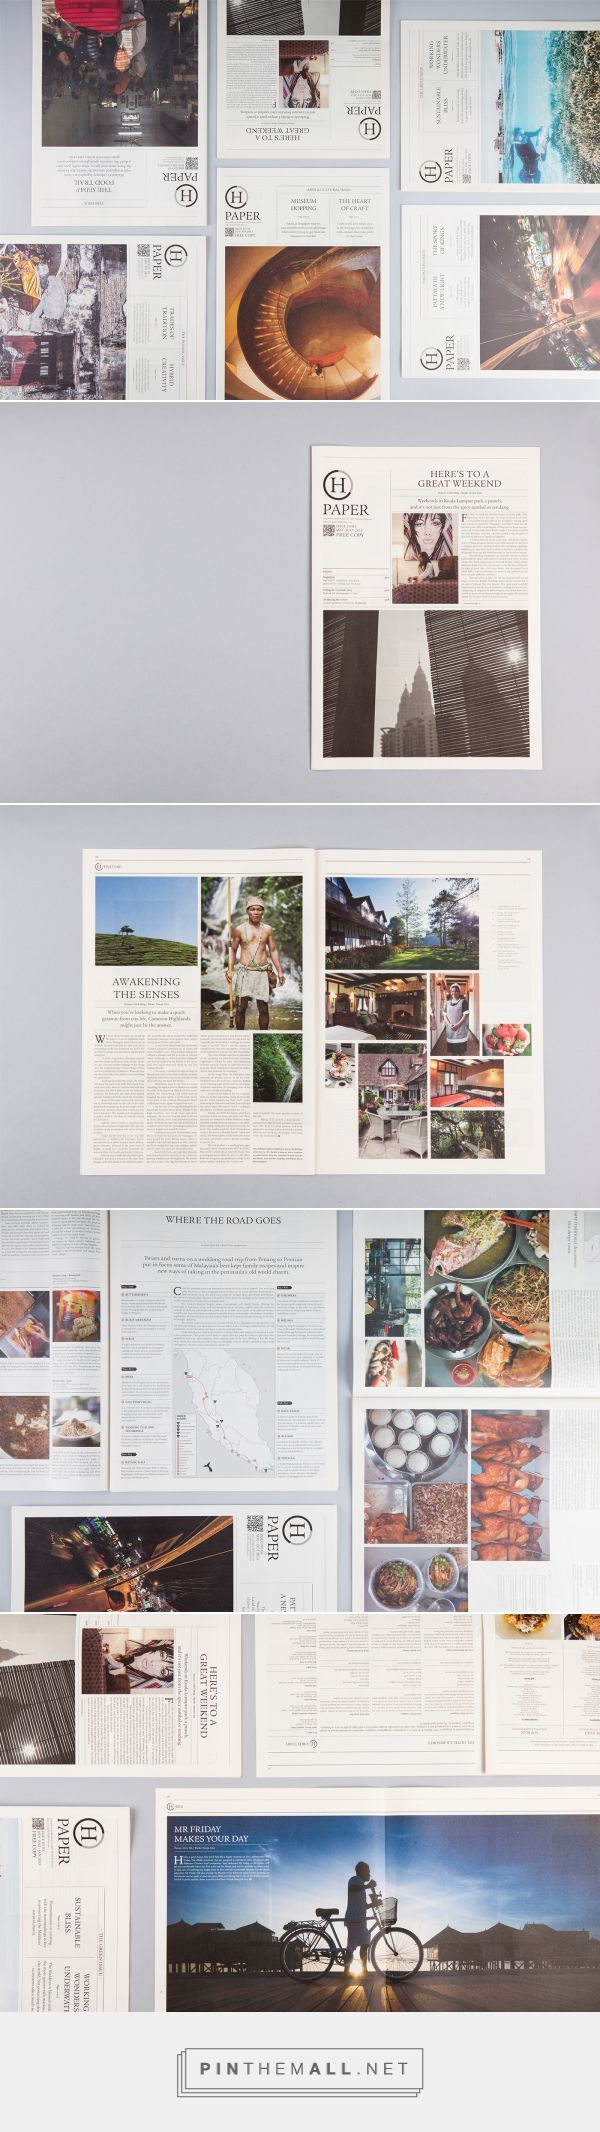 Hpaper — A Quarterly Newsletter on Behance... - a grouped images picture - Pin Them All